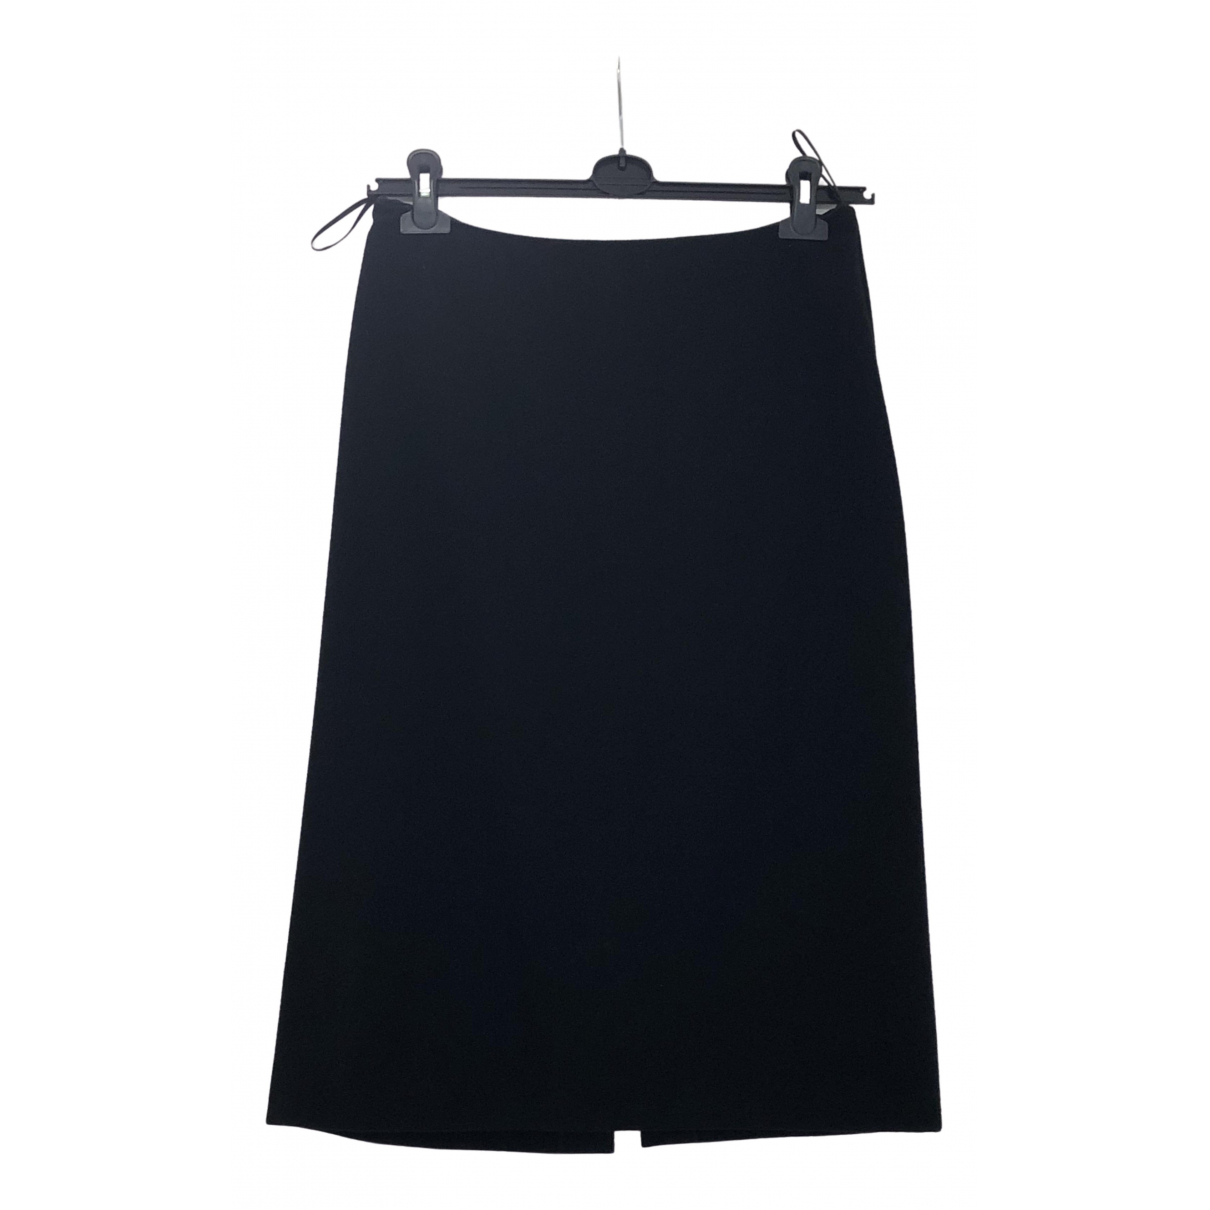 Jil Sander \N Black Cashmere skirt for Women 38 FR